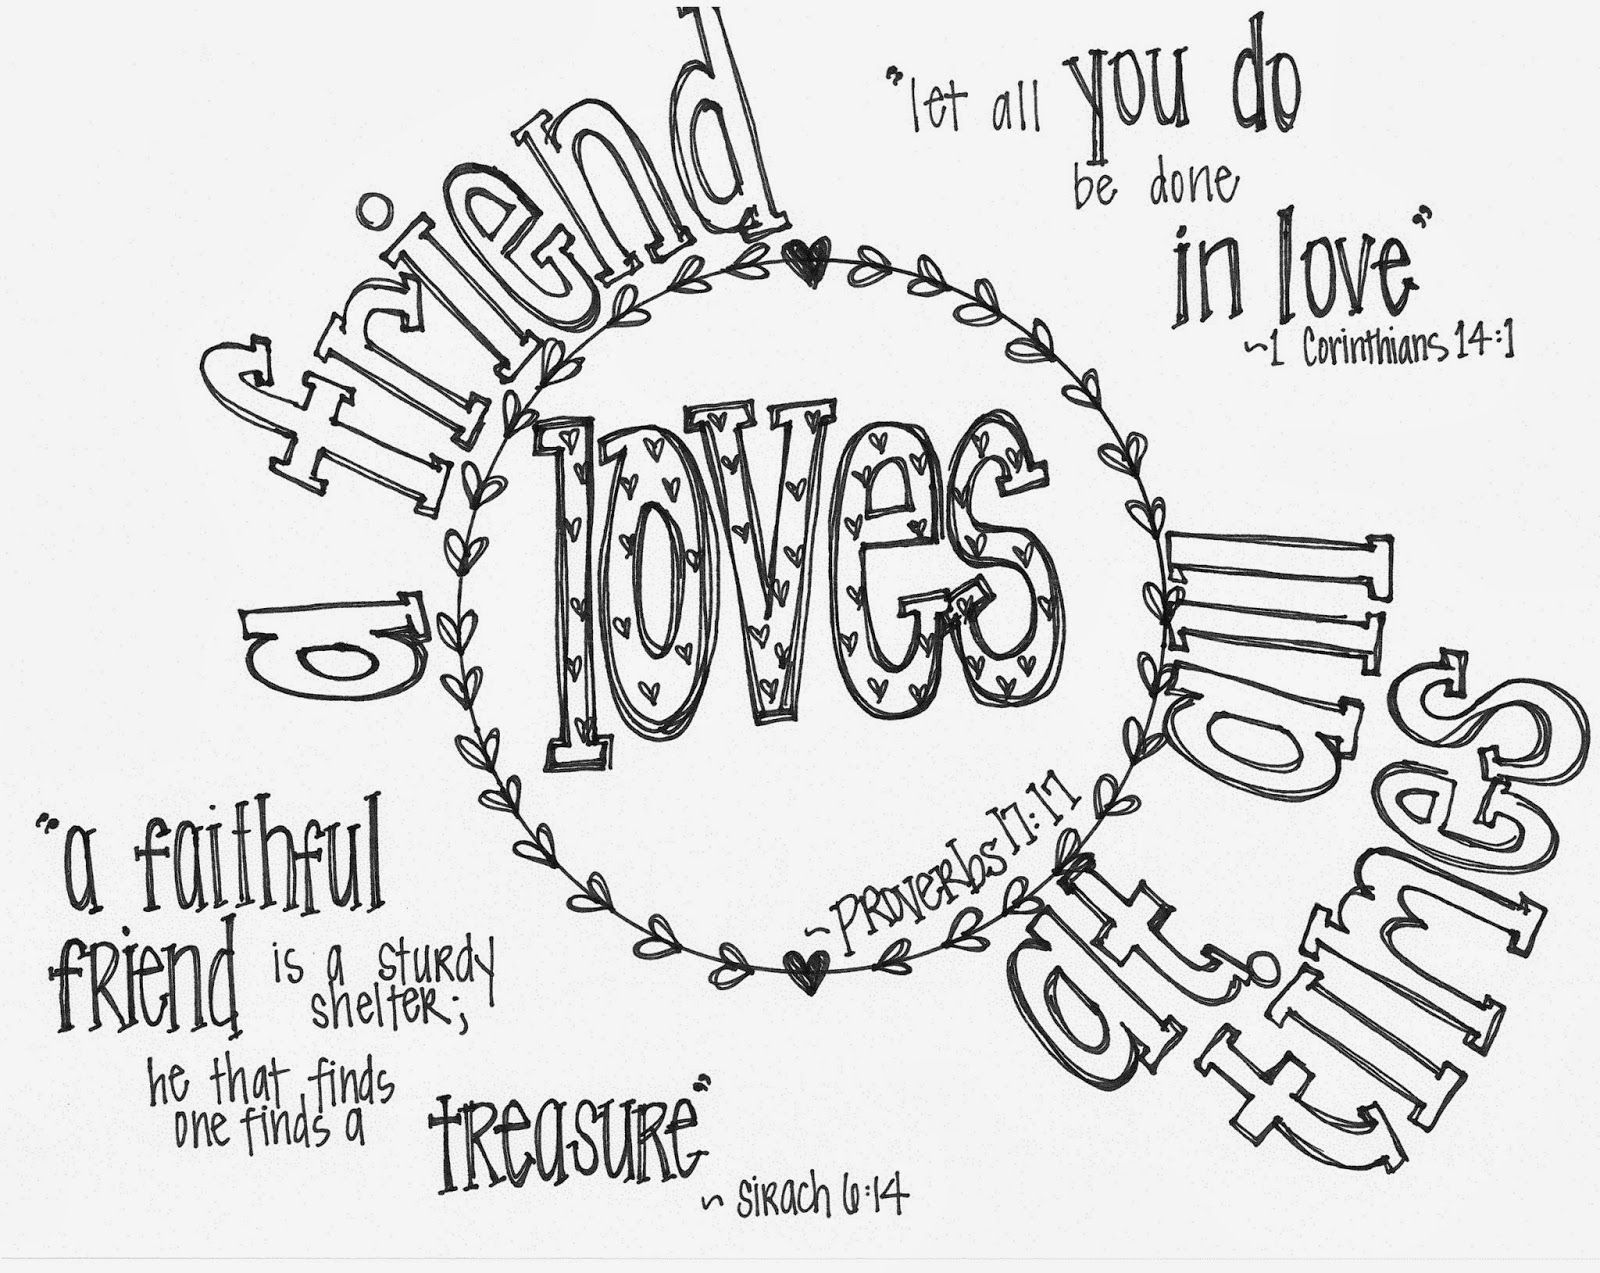 Coloring pages for adults valentines day - Free Printable Valentine S Coloring Page With Bible Verses A Friend Loves At